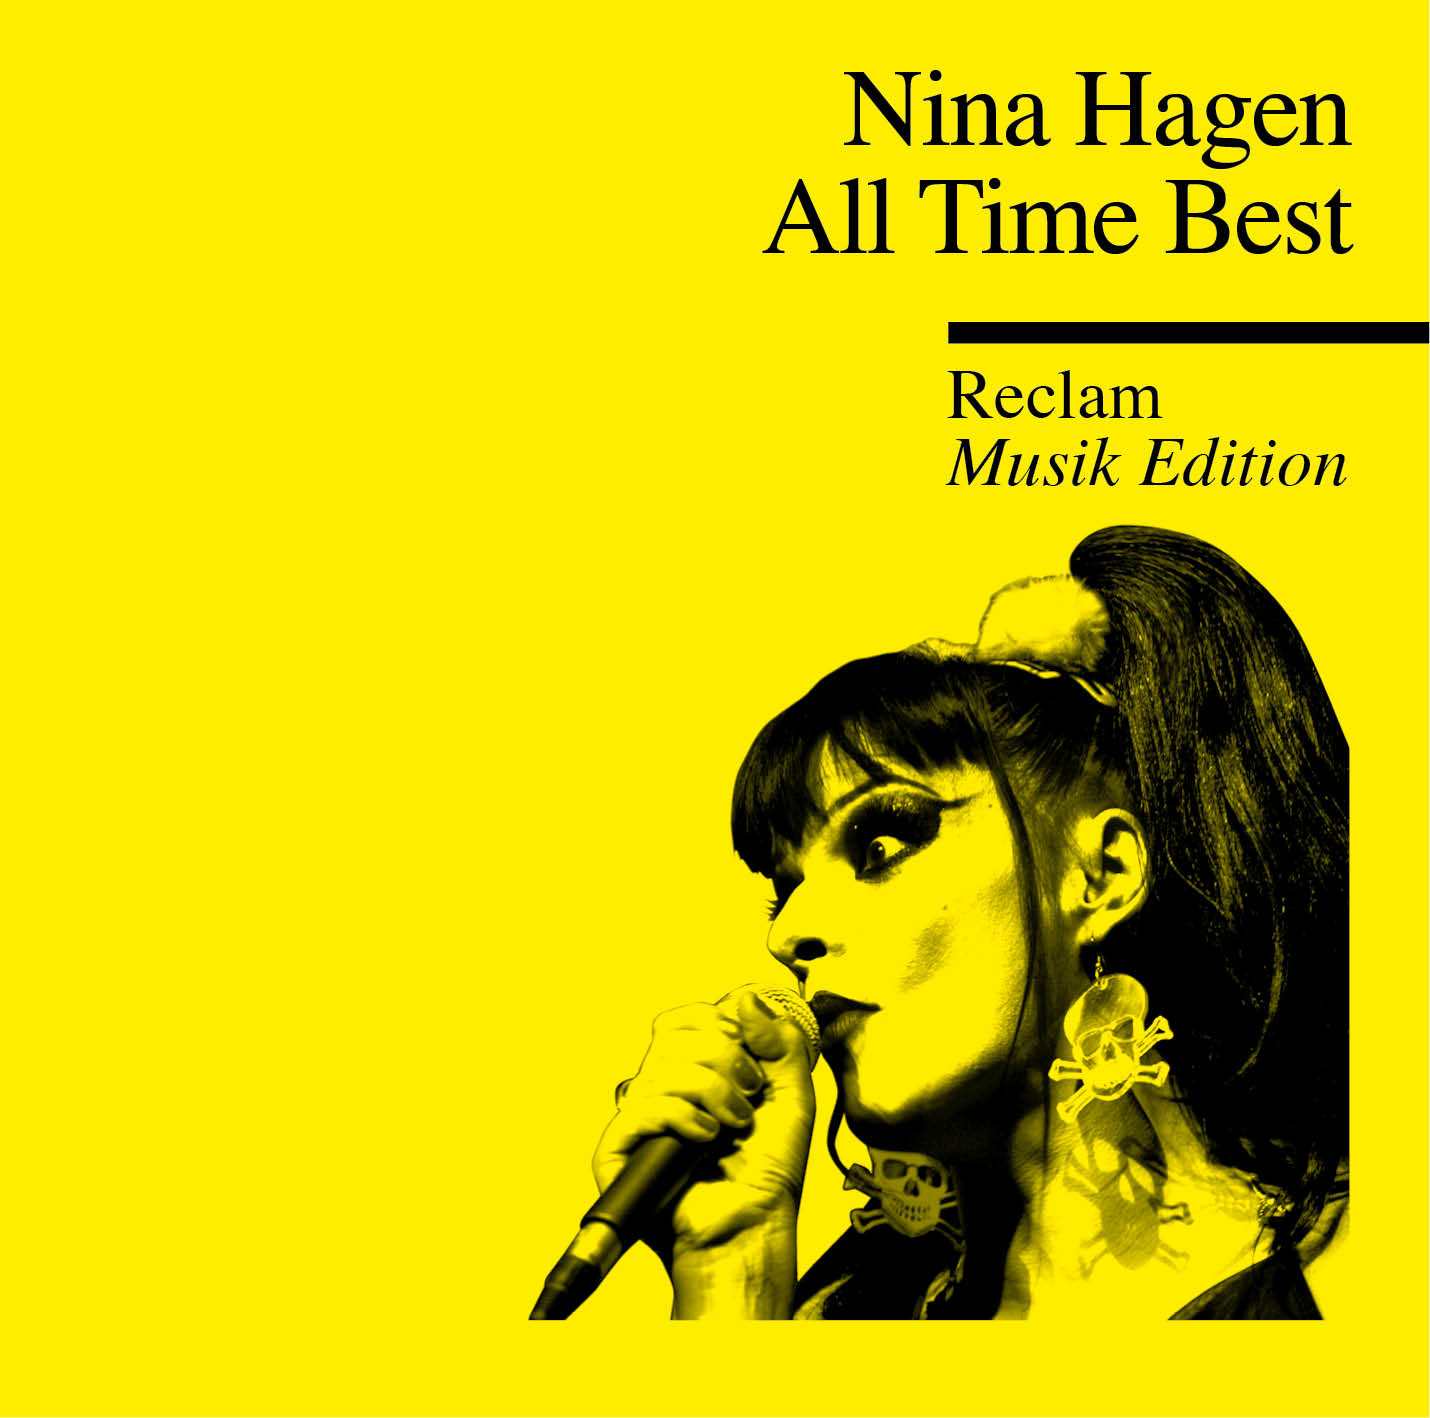 Reclam praesentiert Album Nina Hagen - All Time Best